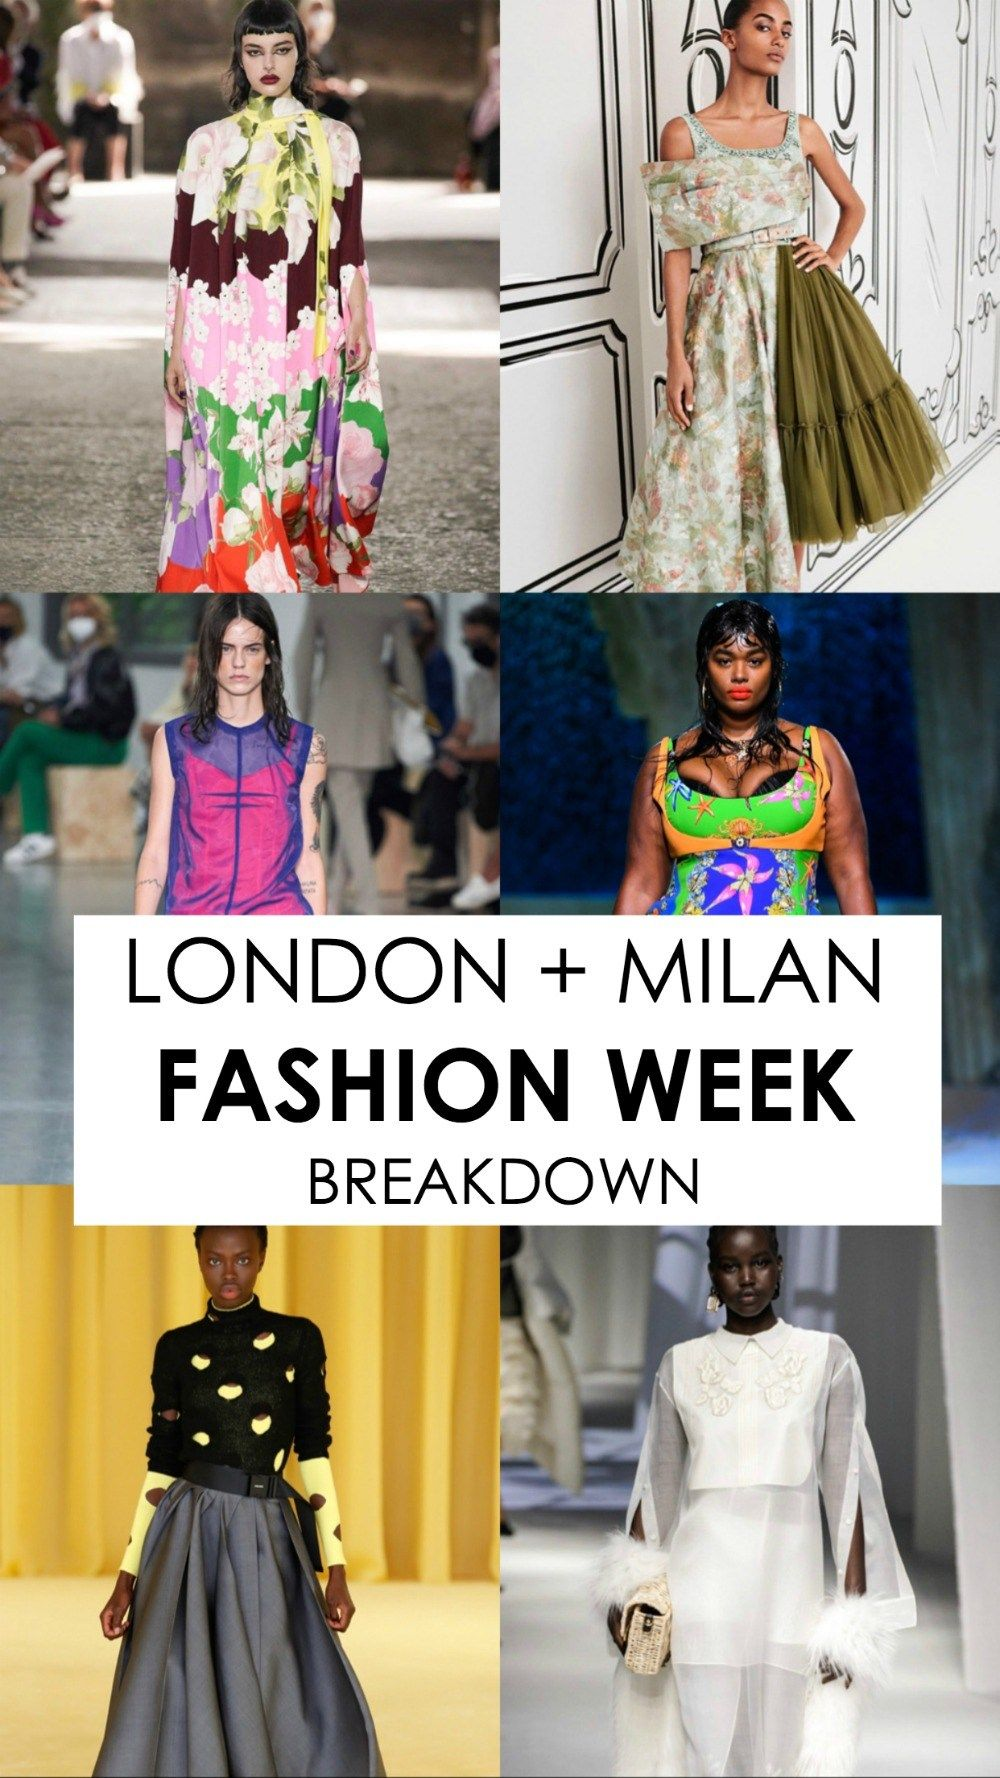 A LFW and MFW Fall 2020 recap that breaks down the highs and the lows of the Spring/Summer 2021 collections as well as a great PRADA debate on Raf Simons' much anticipated debut.  There was A LOT to discuss in the LFW and MFW Fall 2020 recap episode of the Fashion Forward Friends podcast. BothRead More The post Recapping Fashion Week and Debating Raf Simons' Prada Debut appeared first on Dream in Lace.